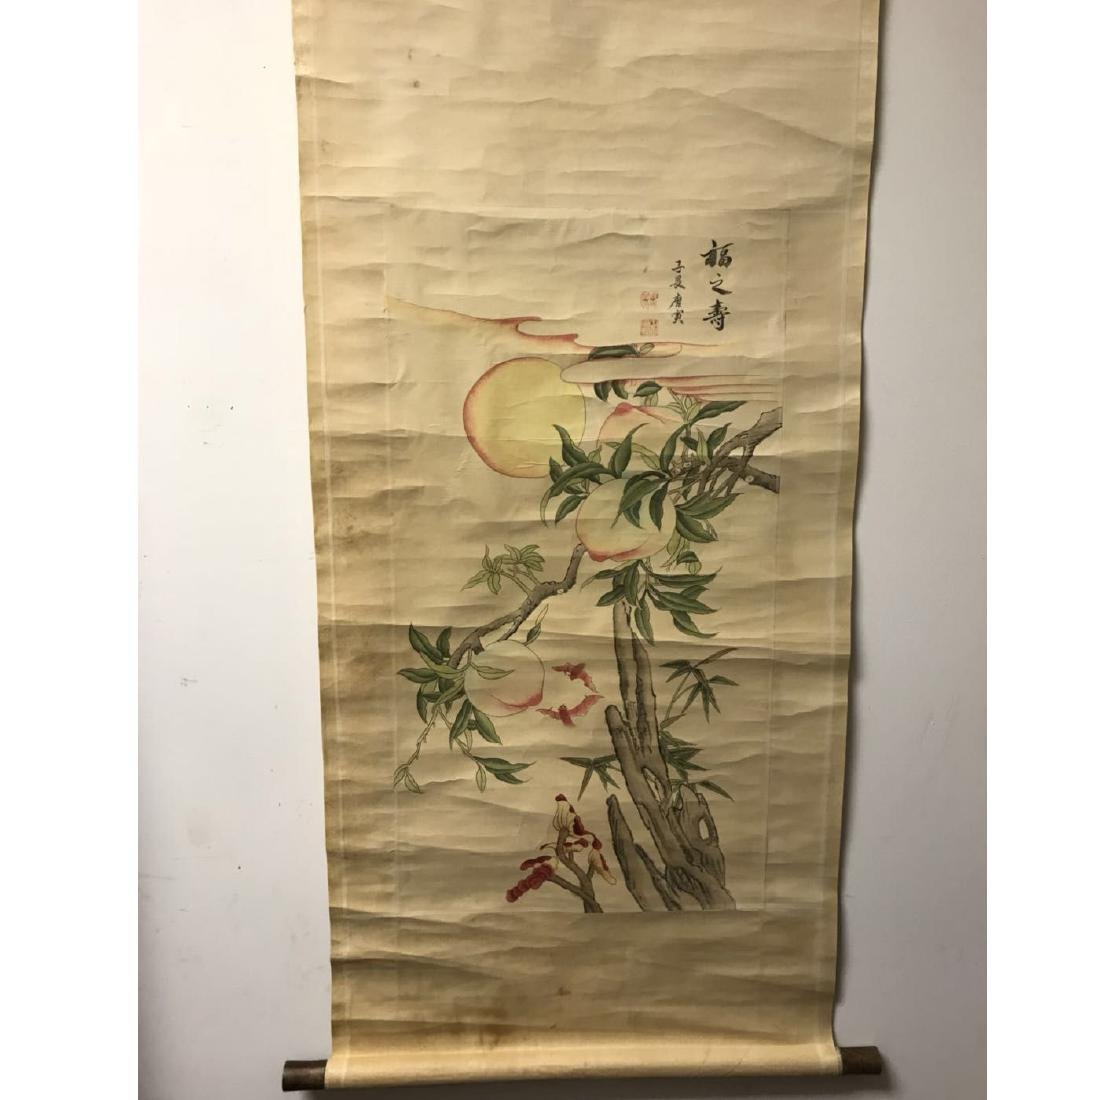 Scroll Painting: Fu Ge Shou